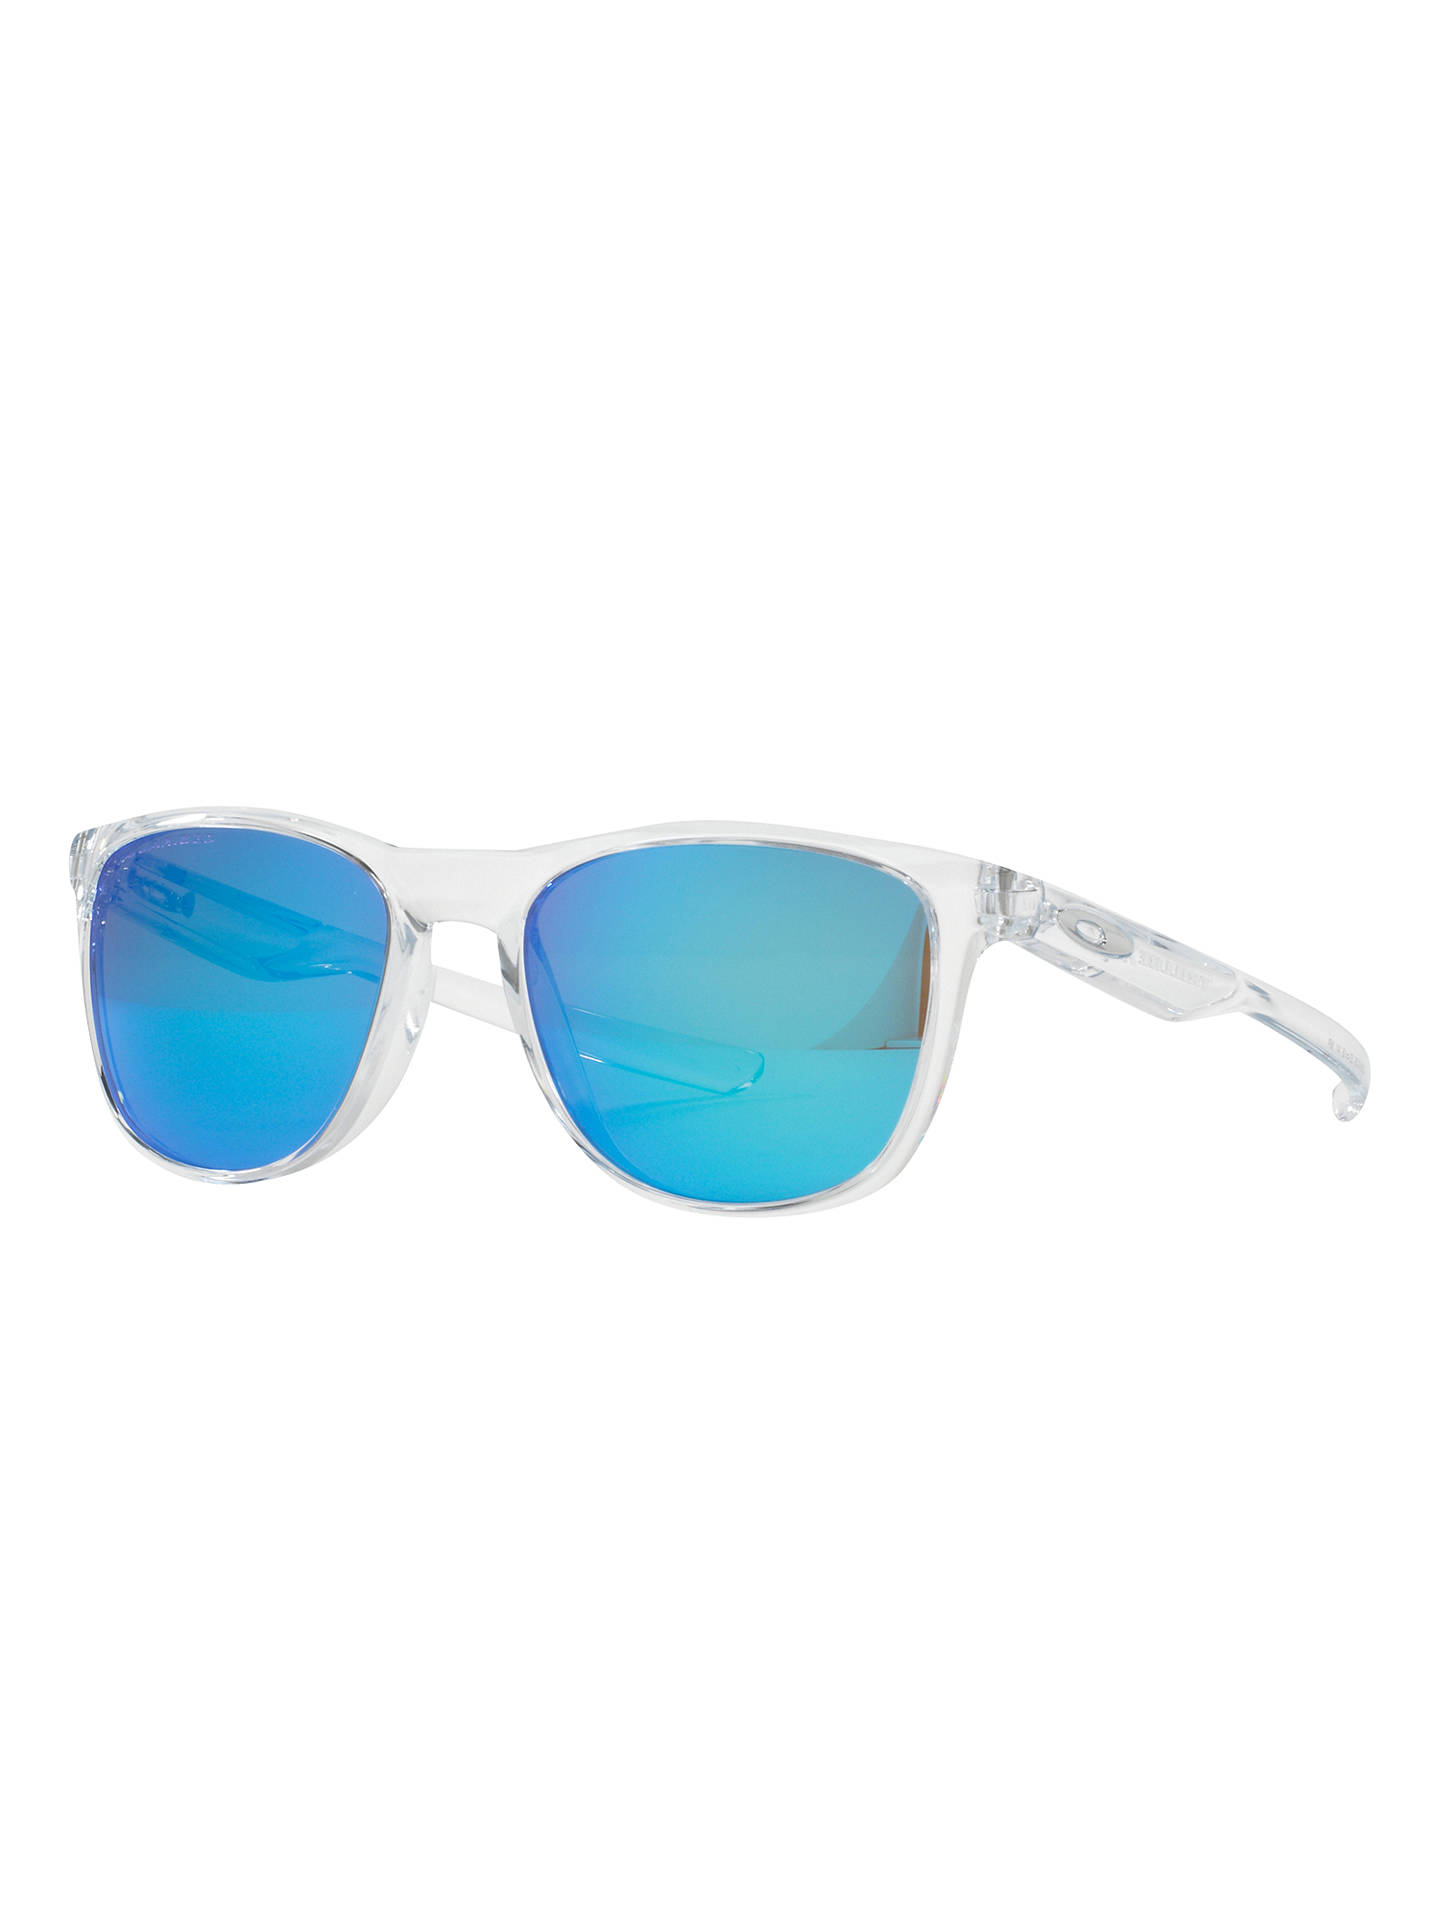 72c92441fb Oakley OO9340 Trillbe X Polarised Square Sunglasses at John Lewis ...